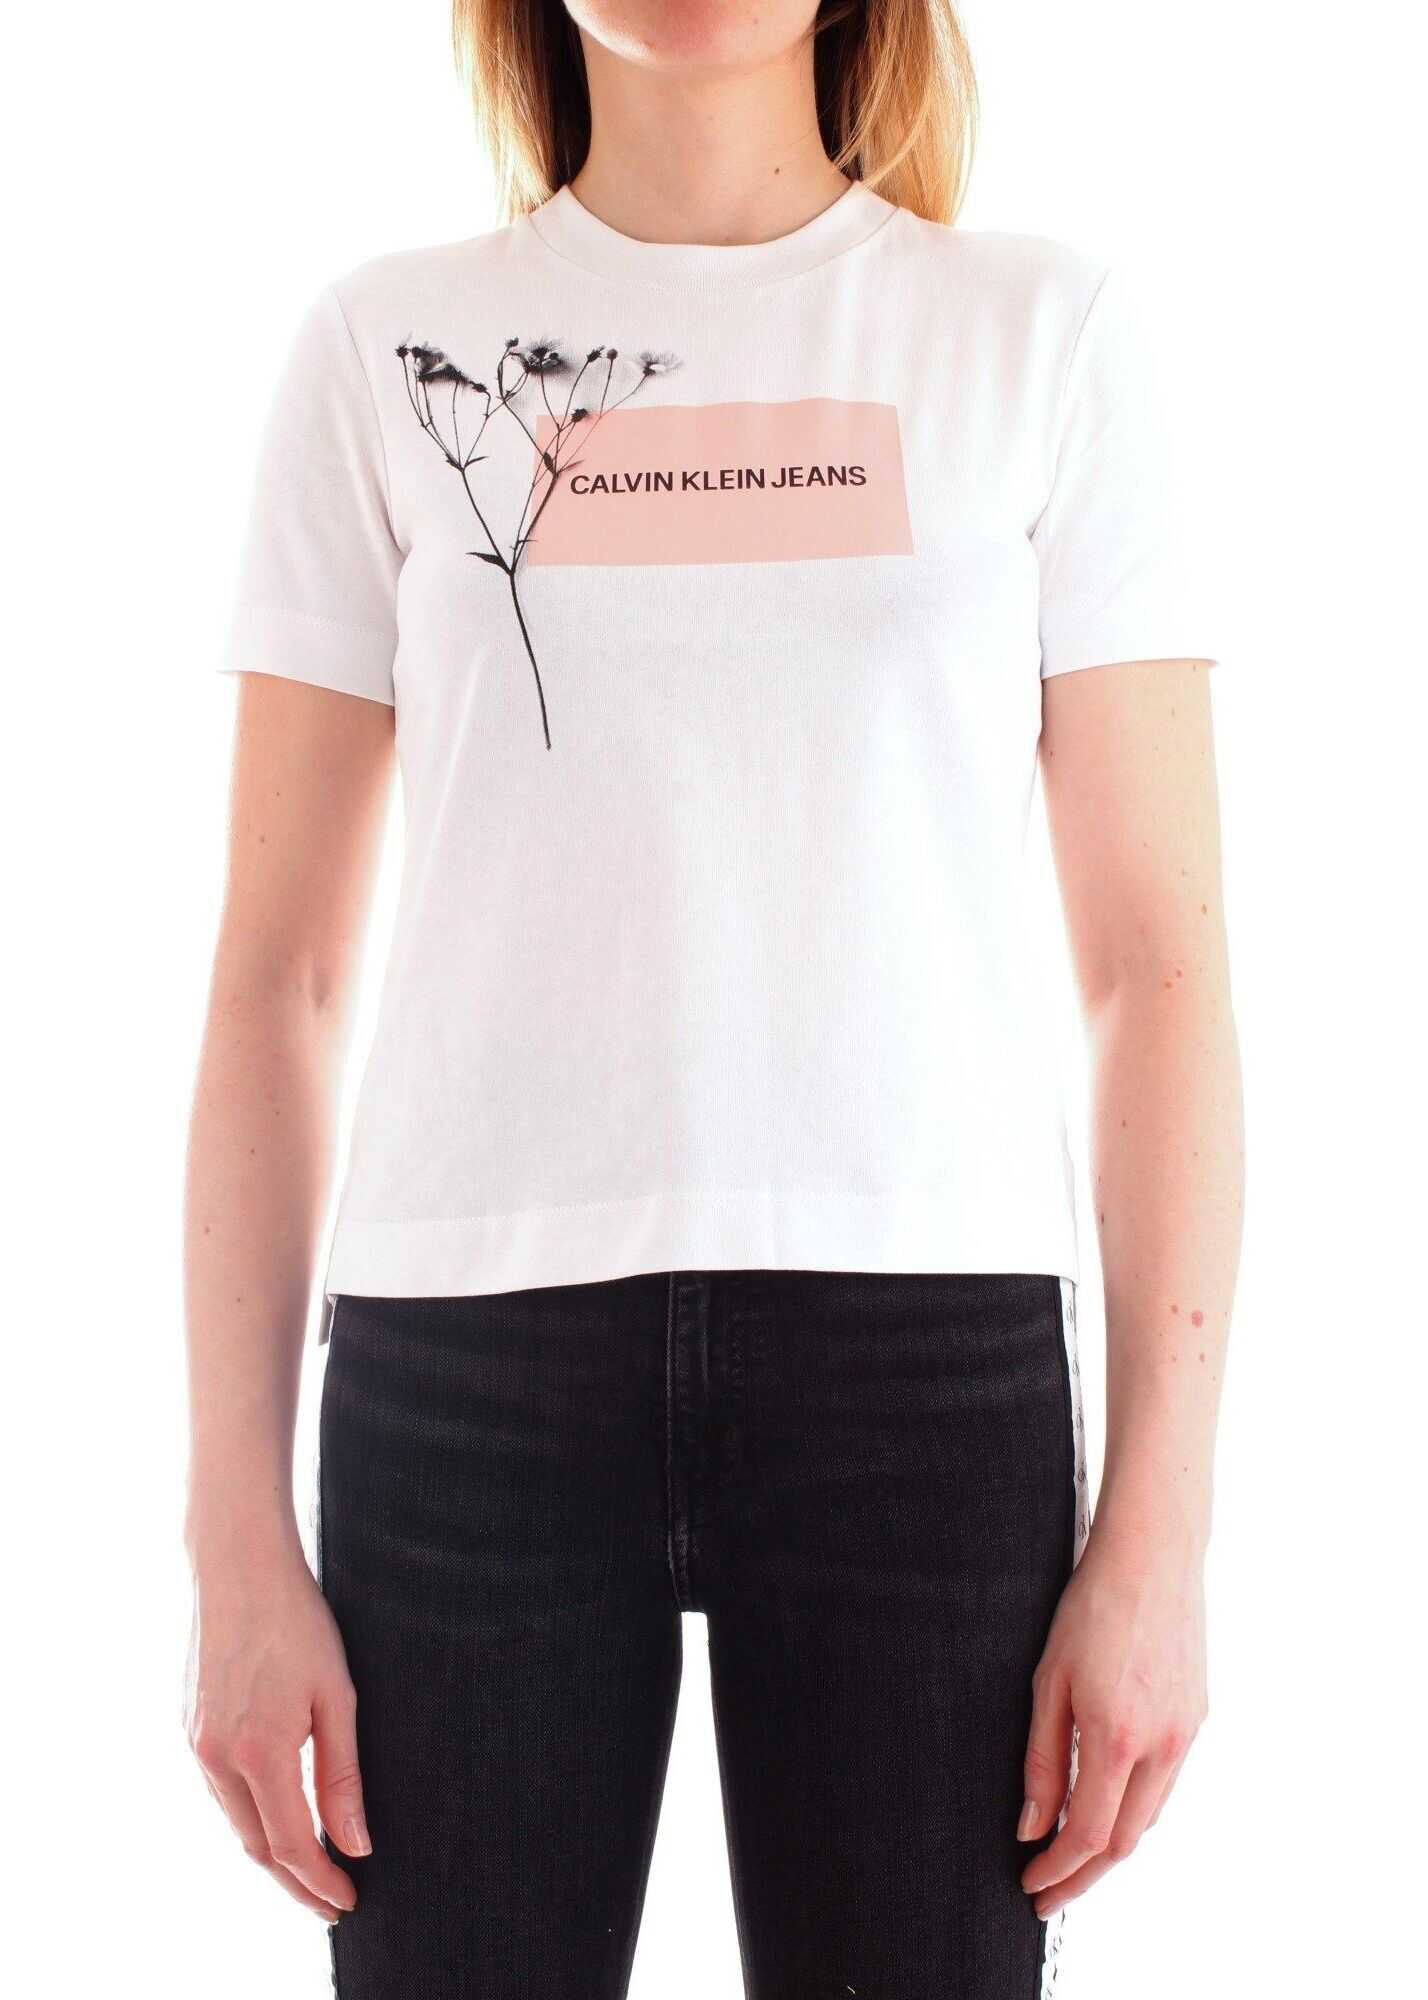 Calvin Klein Jeans Cotton T-Shirt WHITE